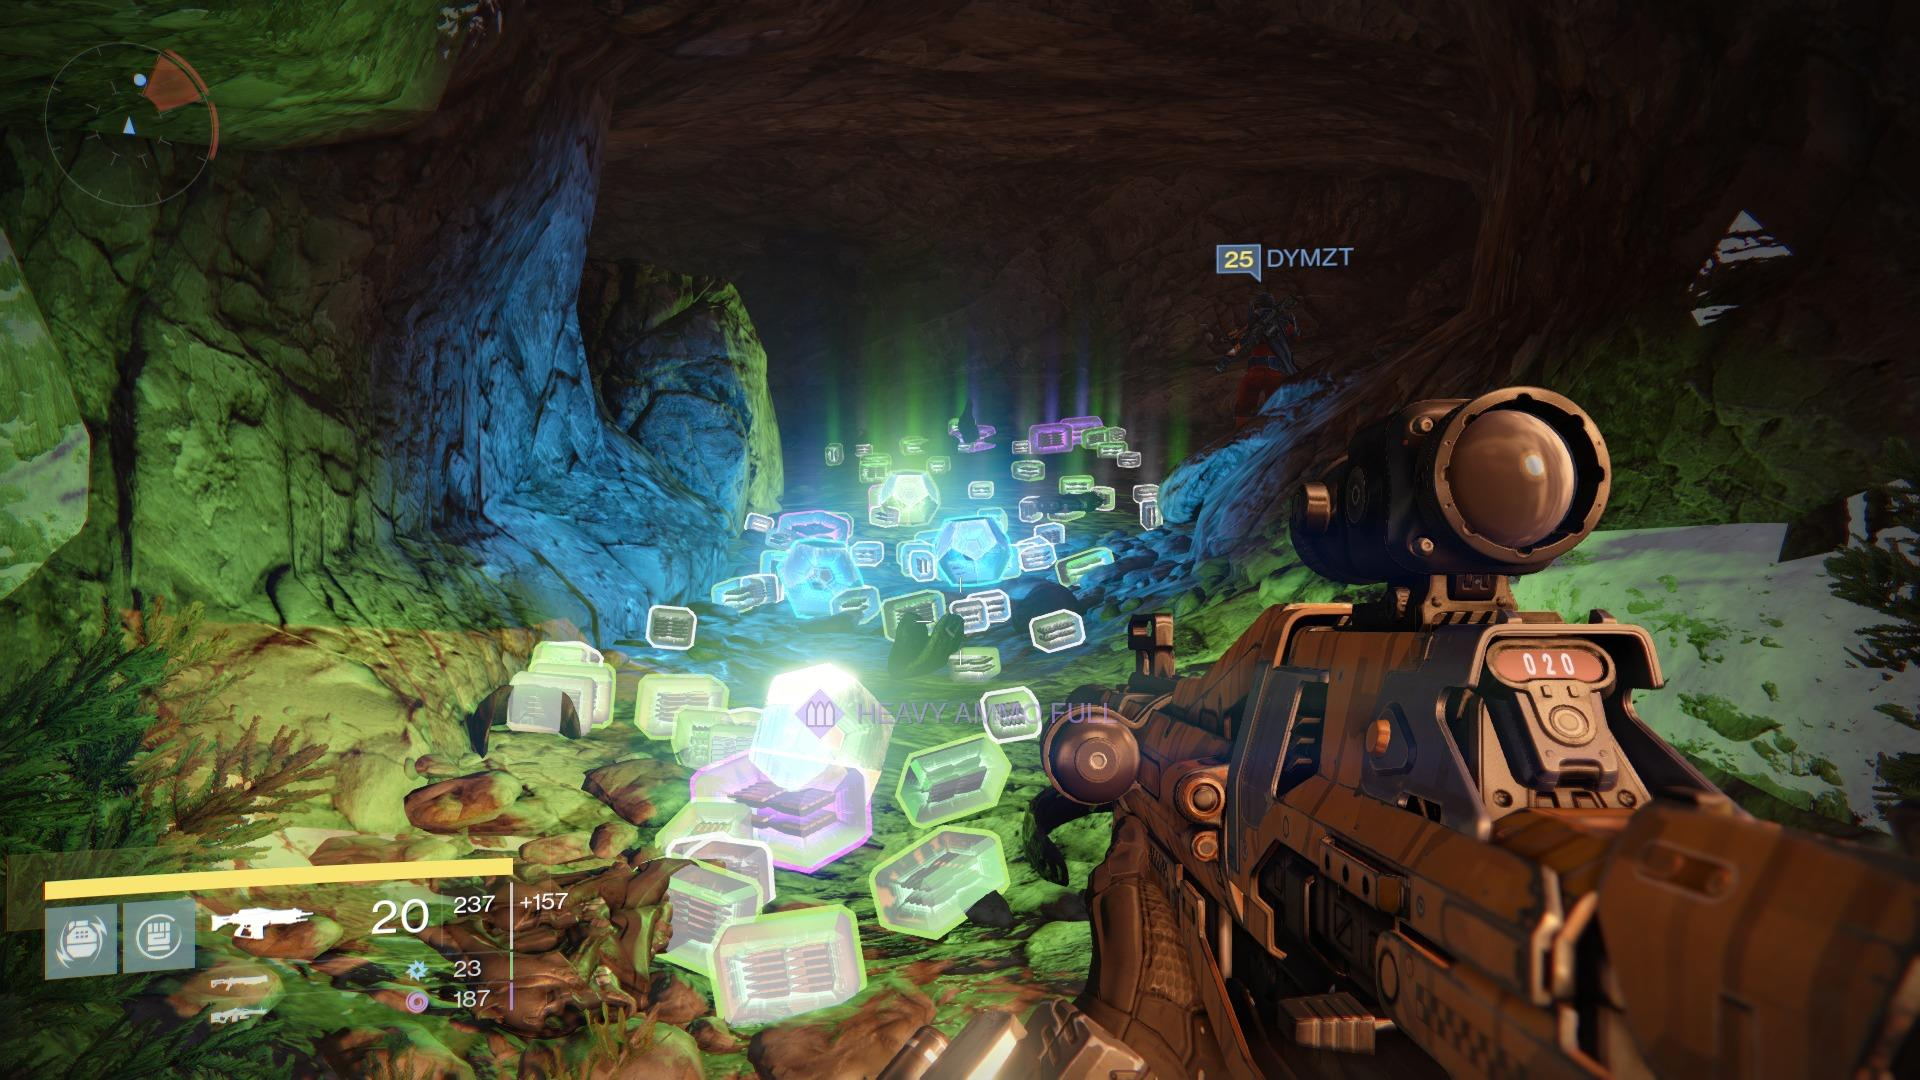 Destiny's loot cave was one of the early reasons why the game's item drop rate was tweaked, even though players were getting weapons and armor they wanted.   PHOTO CREDIT:  ©  Bungie